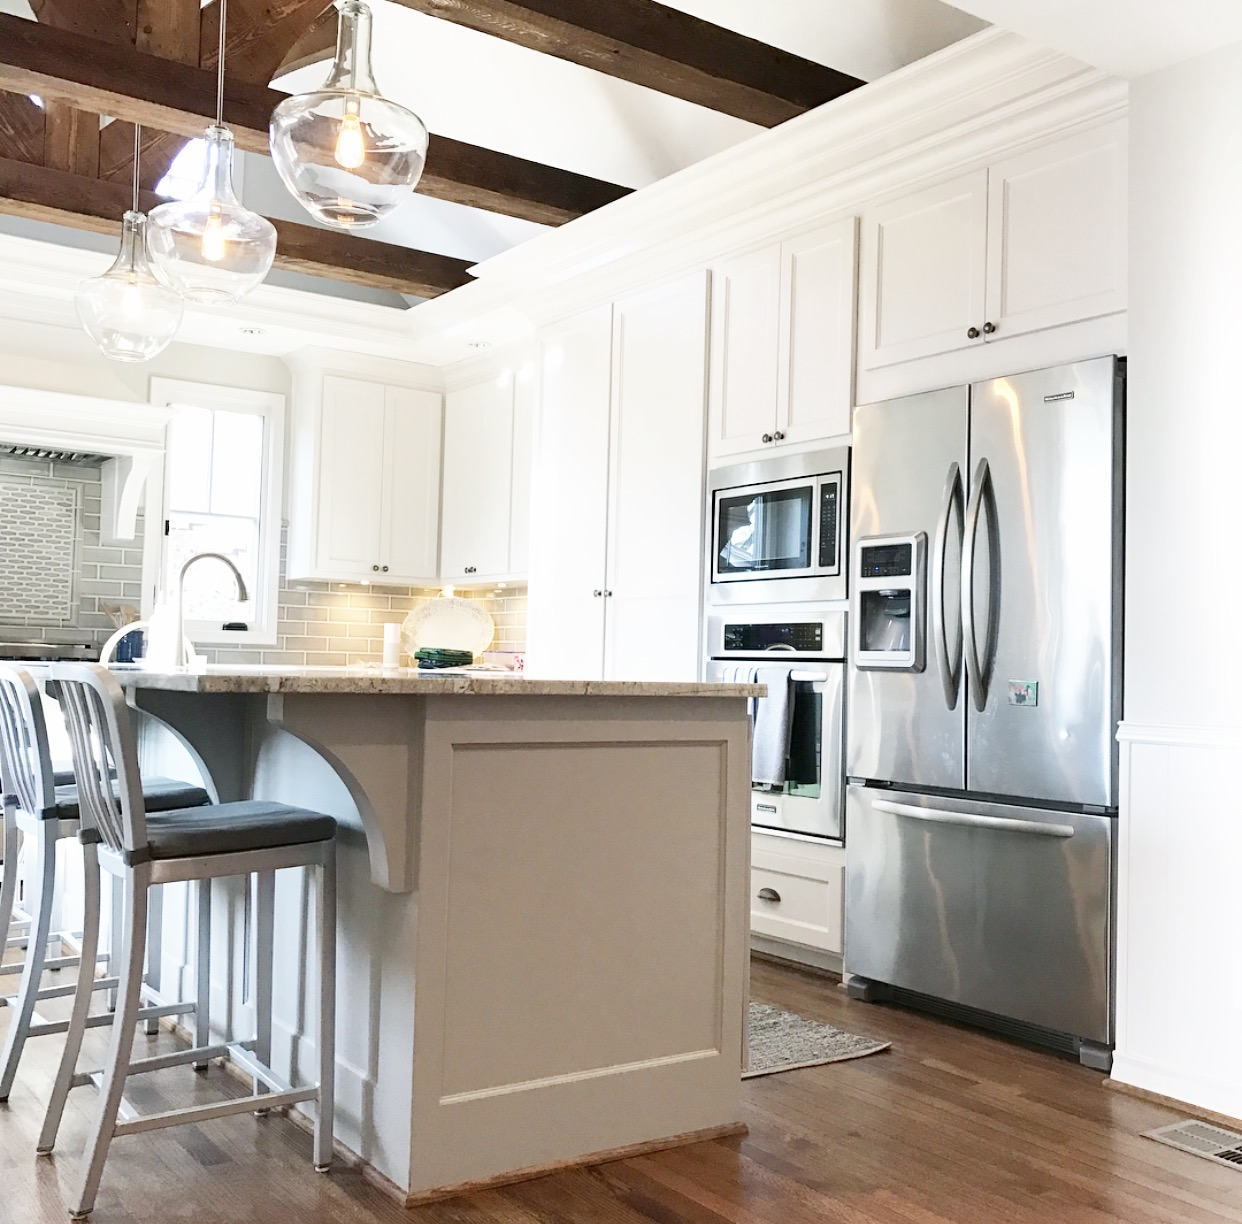 My Sweet Clients Recently Knocked Out A Wall In Their Home To Create GORGEOUS New Kitchen Lets Admire For Just Moment